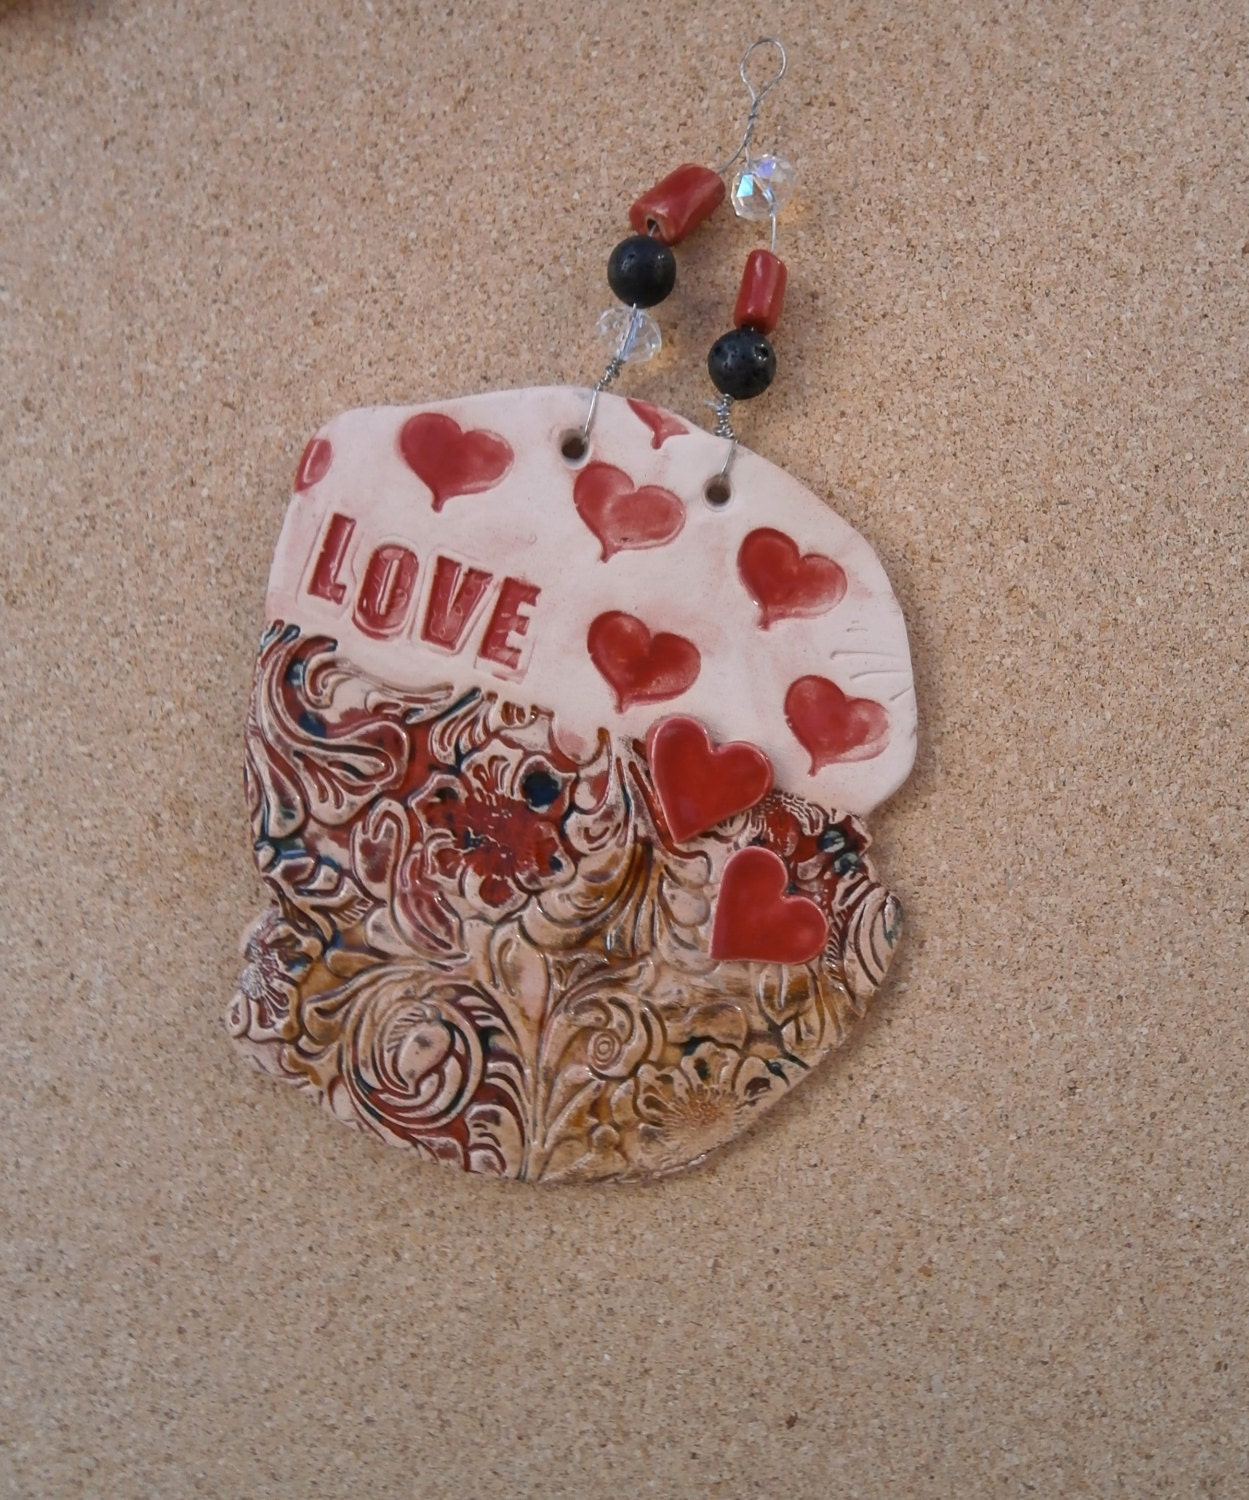 Red heart ceramic plaque  Love earthenware wall art  hearts and flowers hanging